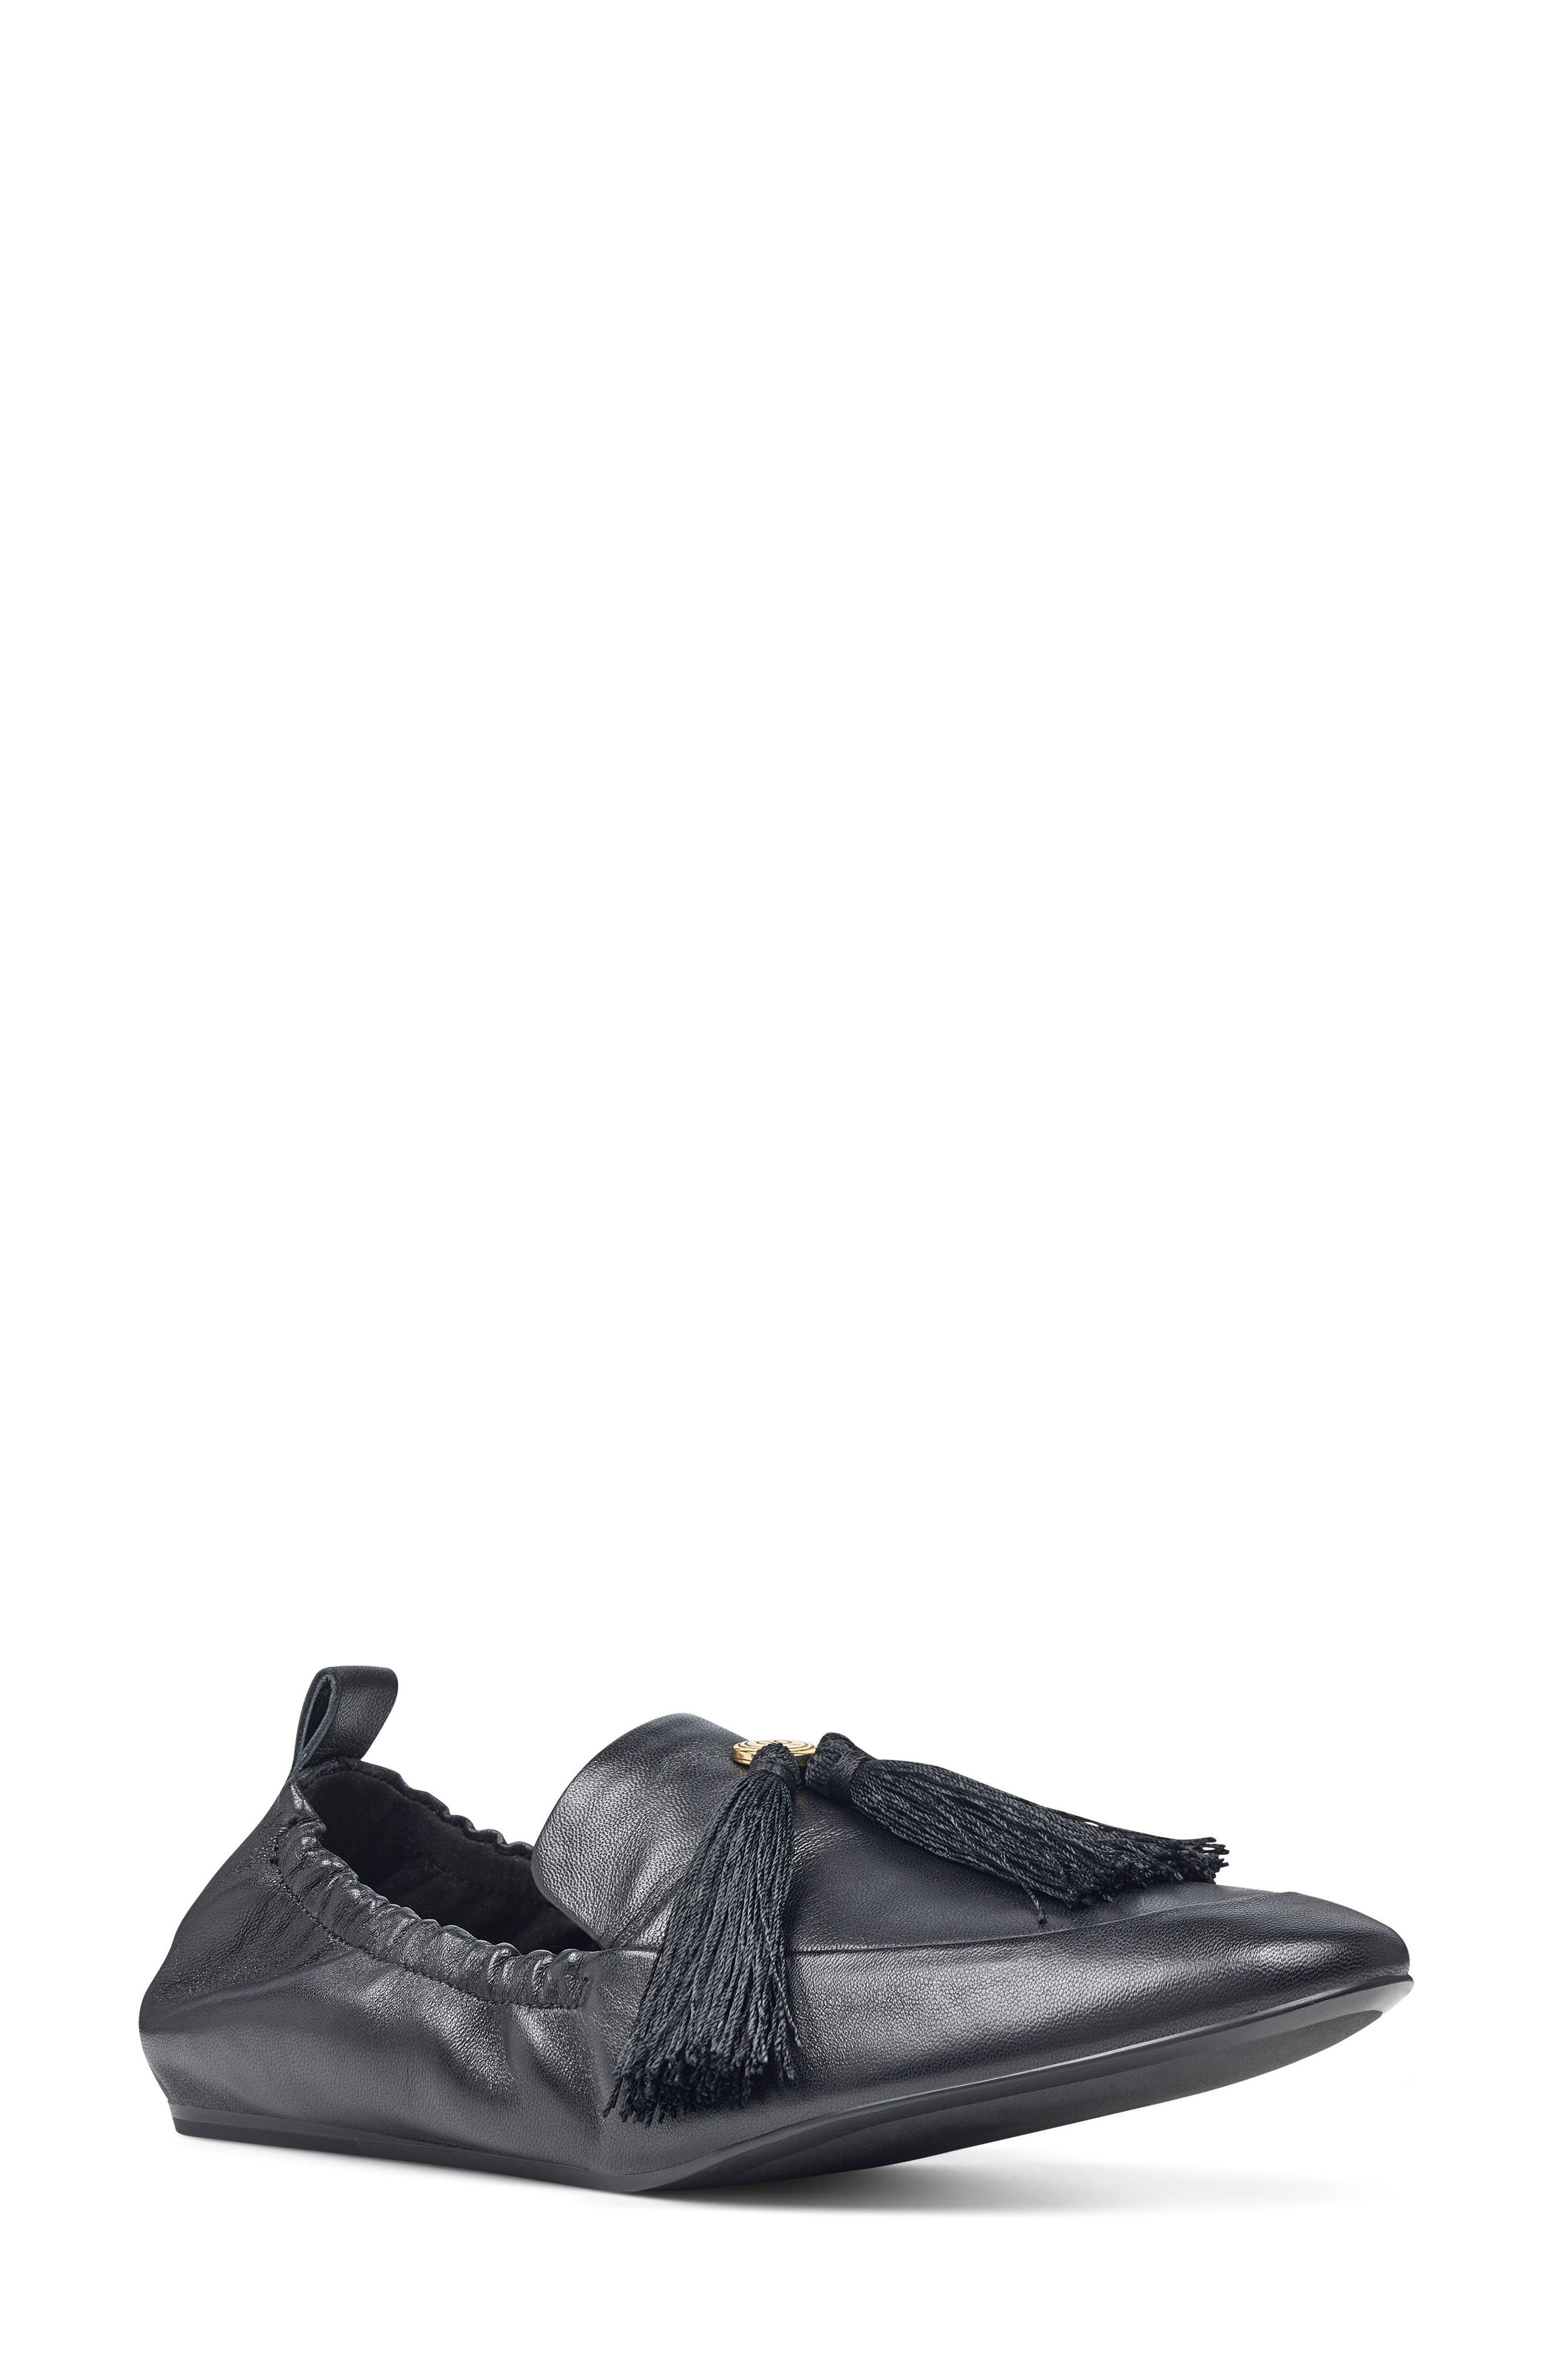 Nine West Ballard Tassel Loafer Flat (Women)